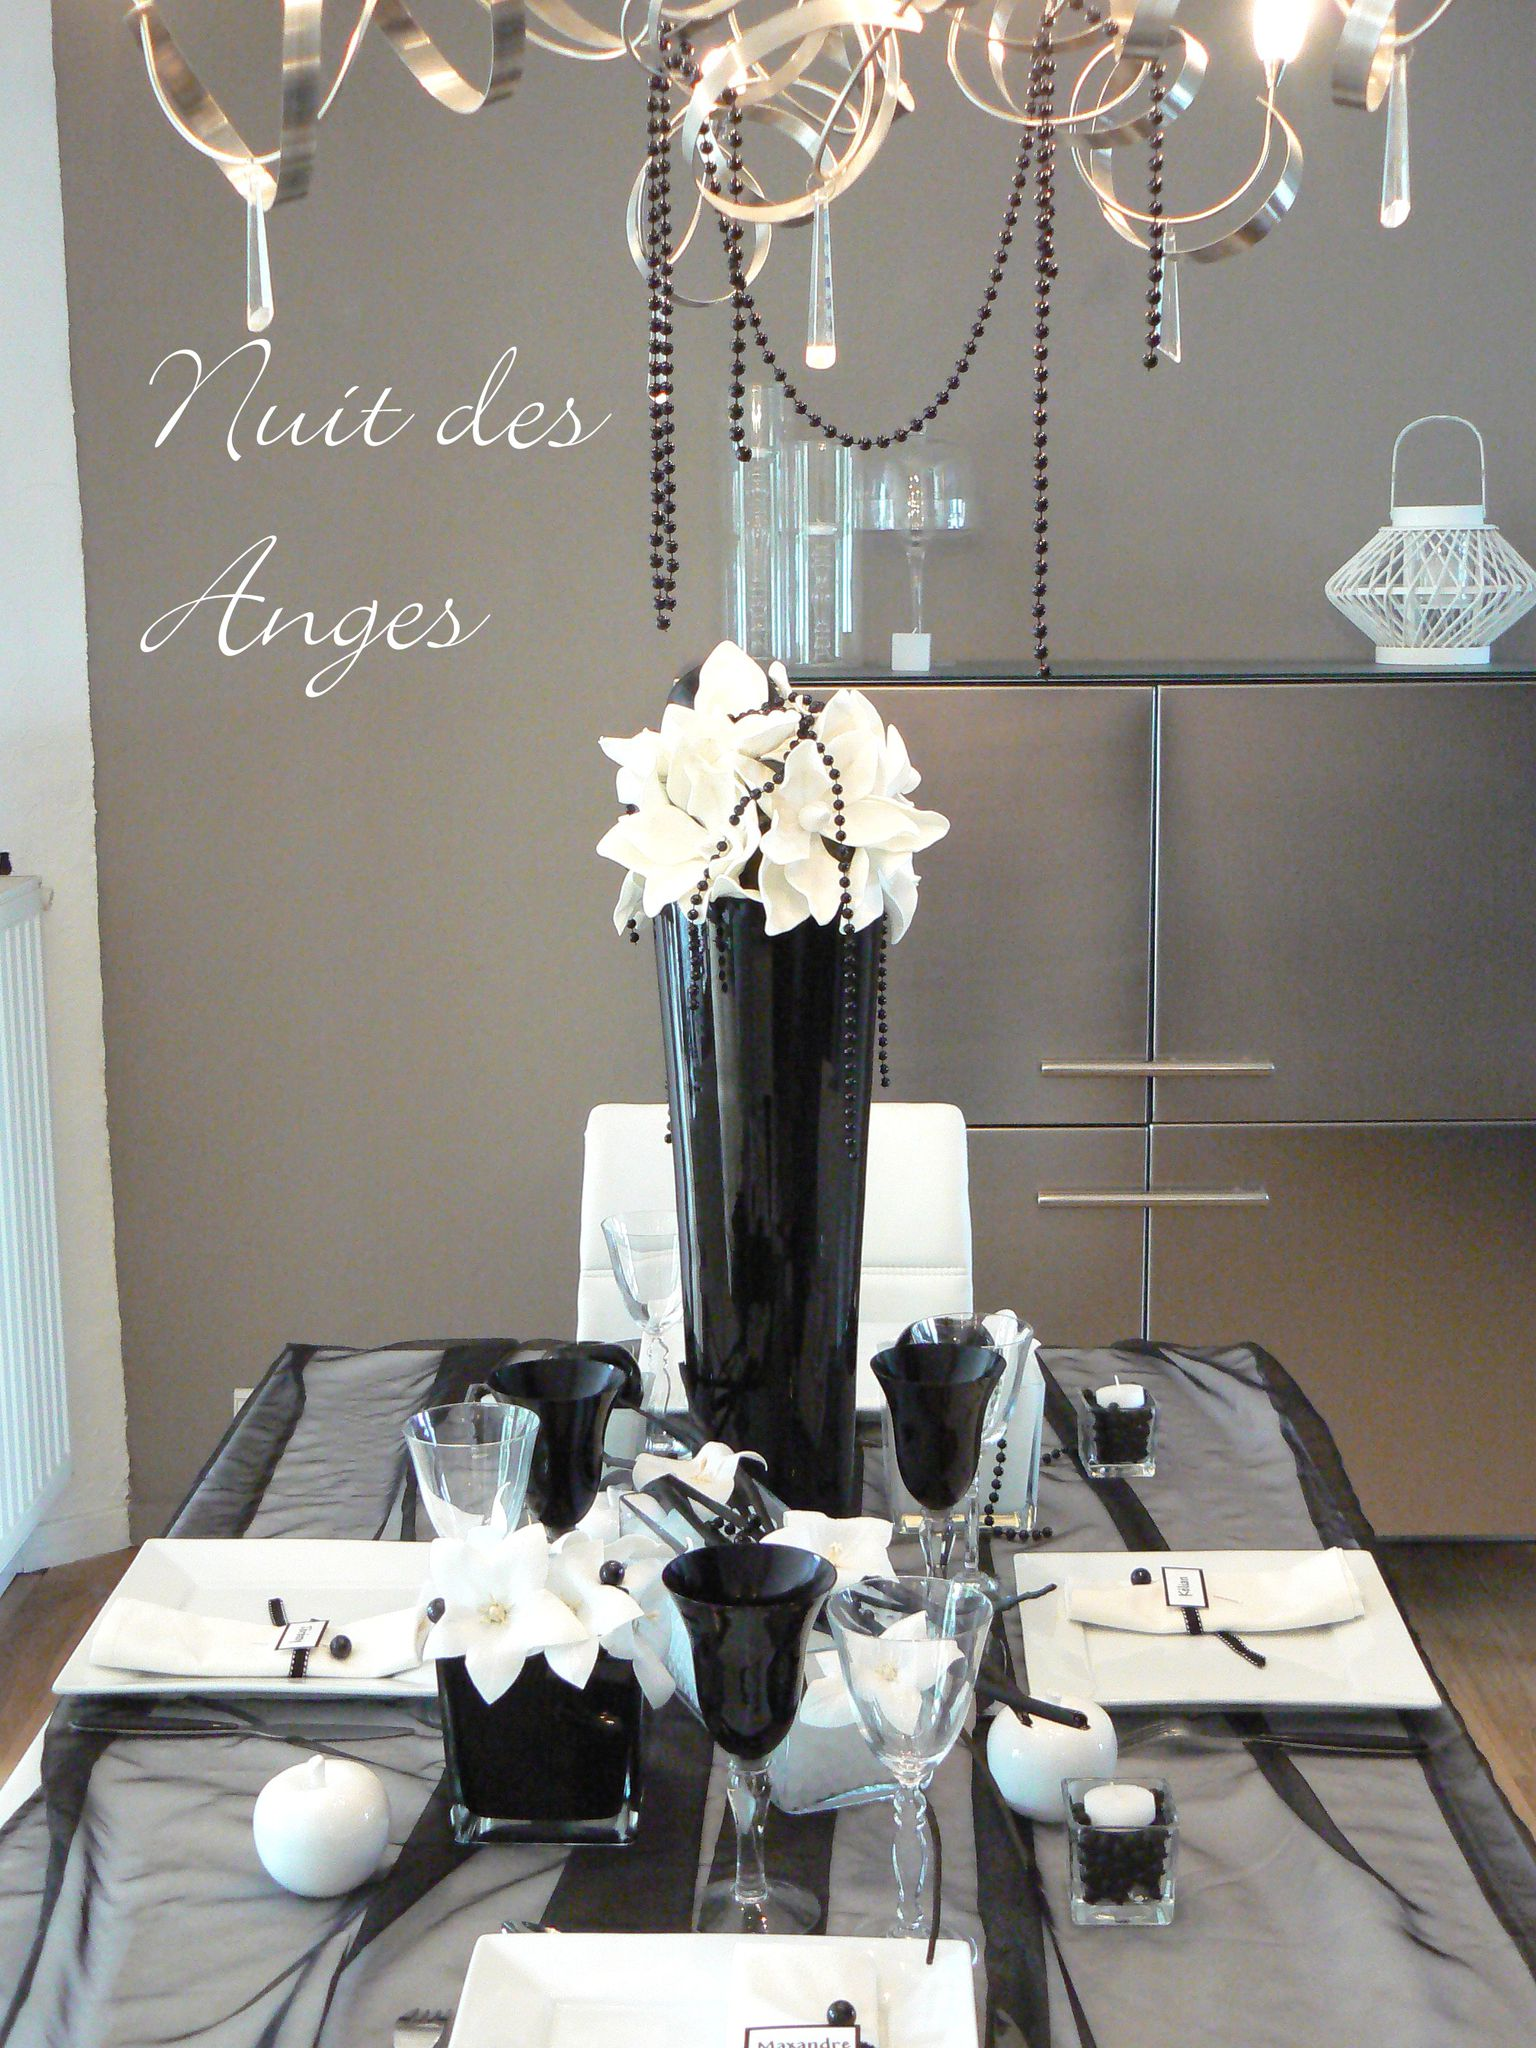 nuit des anges d coratrice de mariage d coratiojn de table. Black Bedroom Furniture Sets. Home Design Ideas